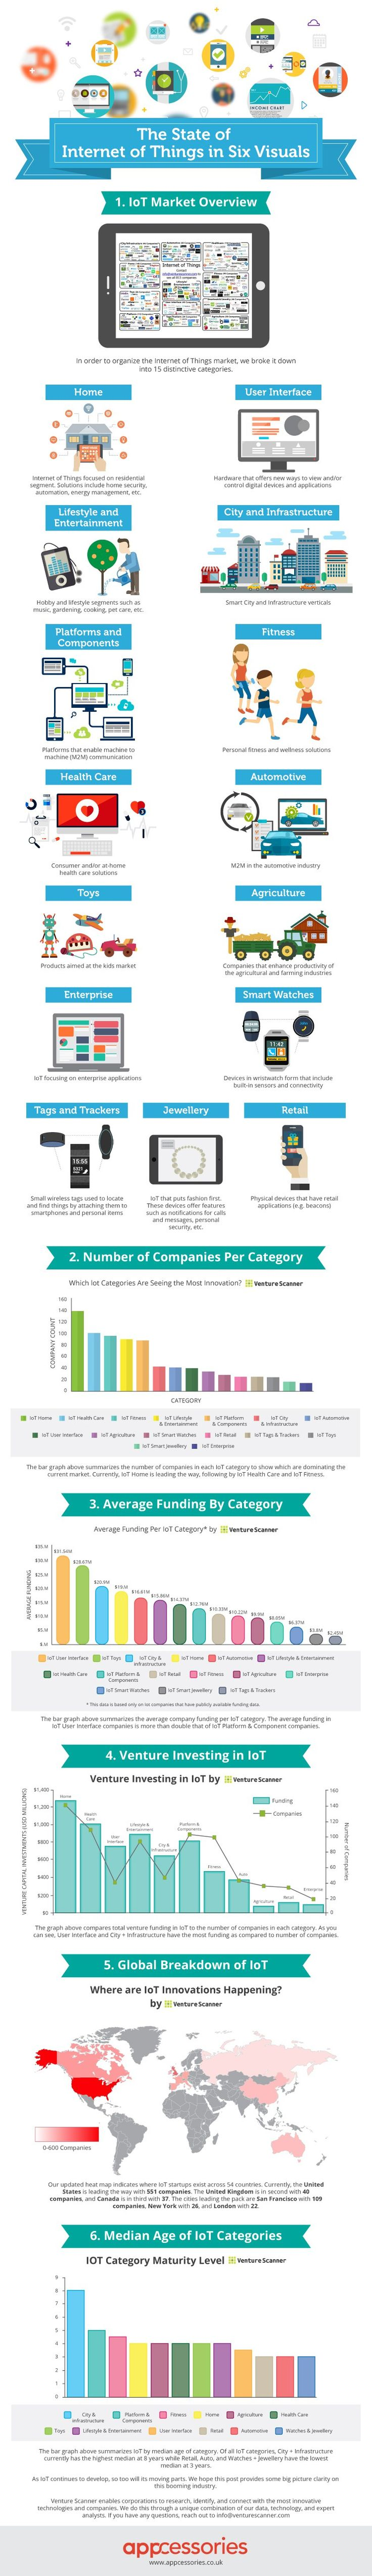 The State of Internet of Things in 6 Visuals – By the team at Appcessories